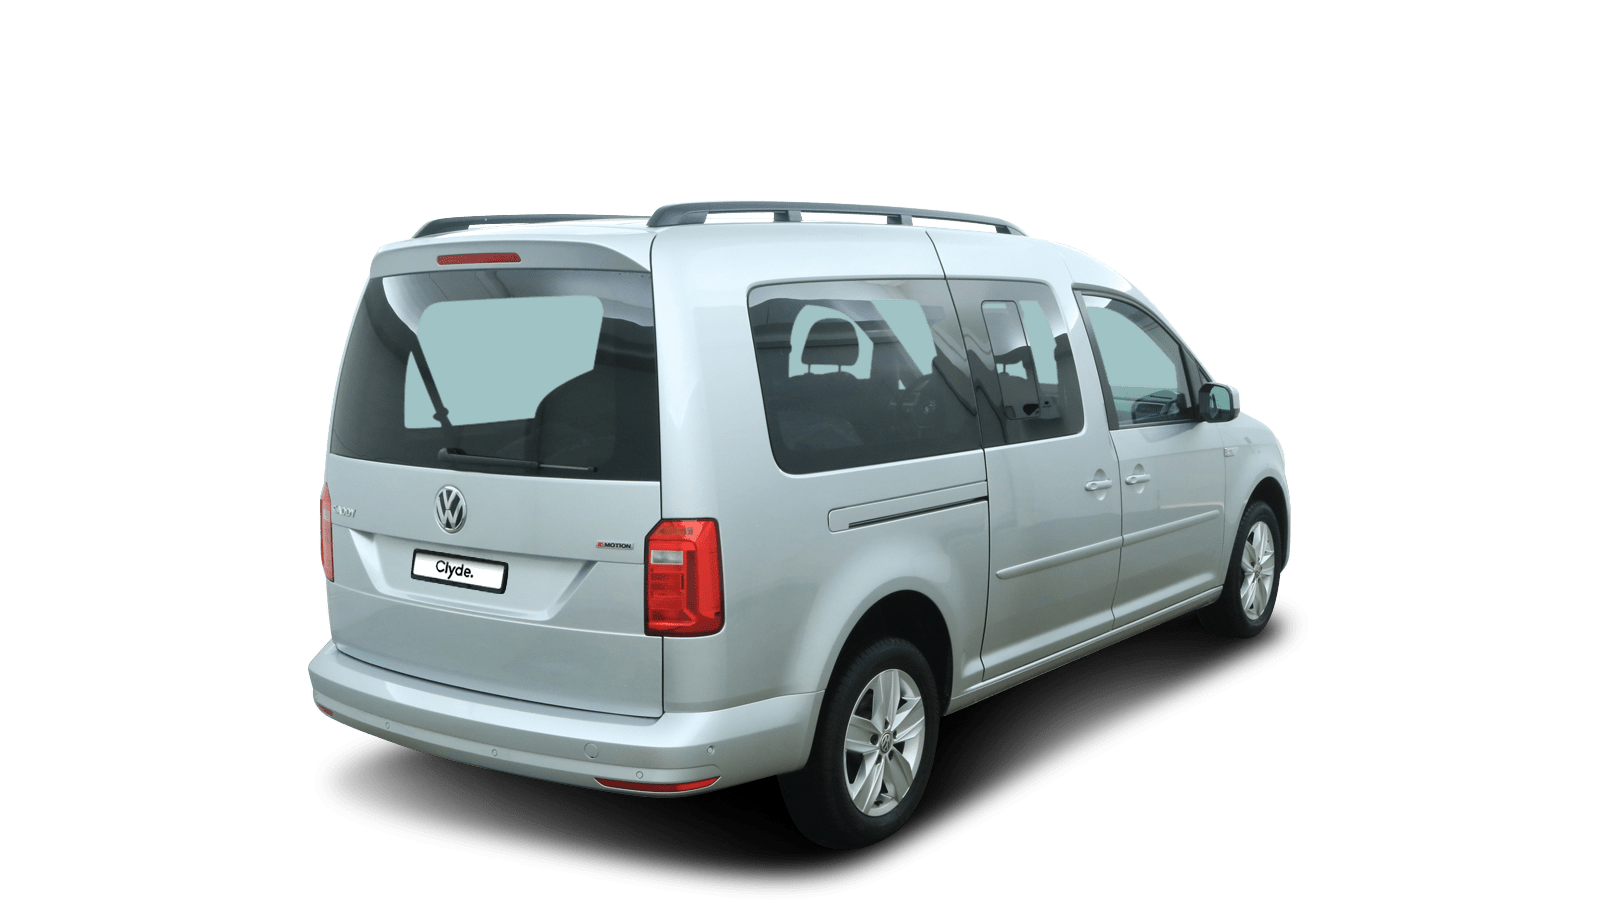 VW NF Caddy Maxi Silver back - Clyde car subscription